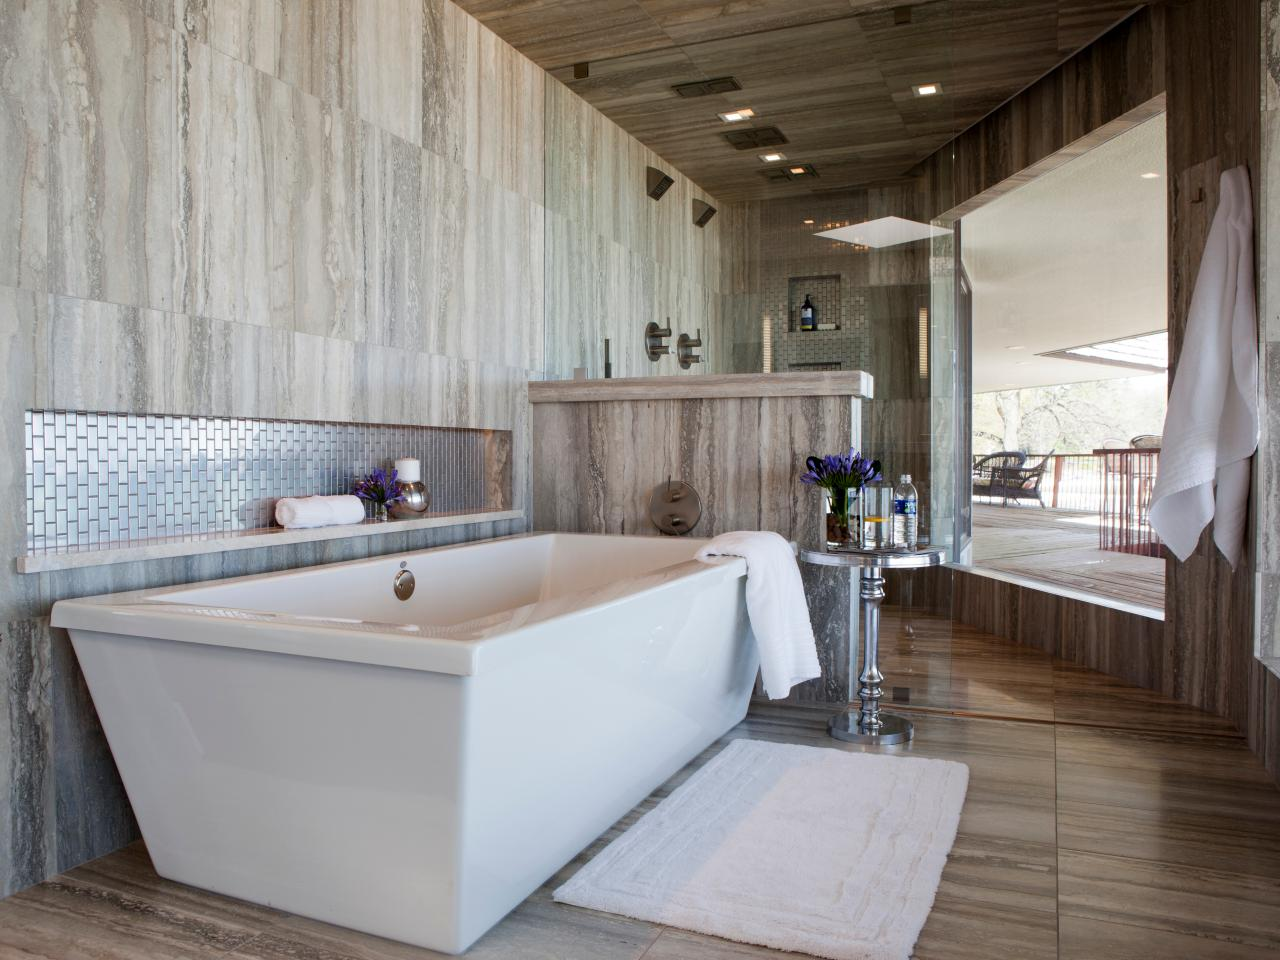 Contemporary Bathrooms Pictures Ideas Tips From HGTV HGTV - Modern kitchen and bathroom designs